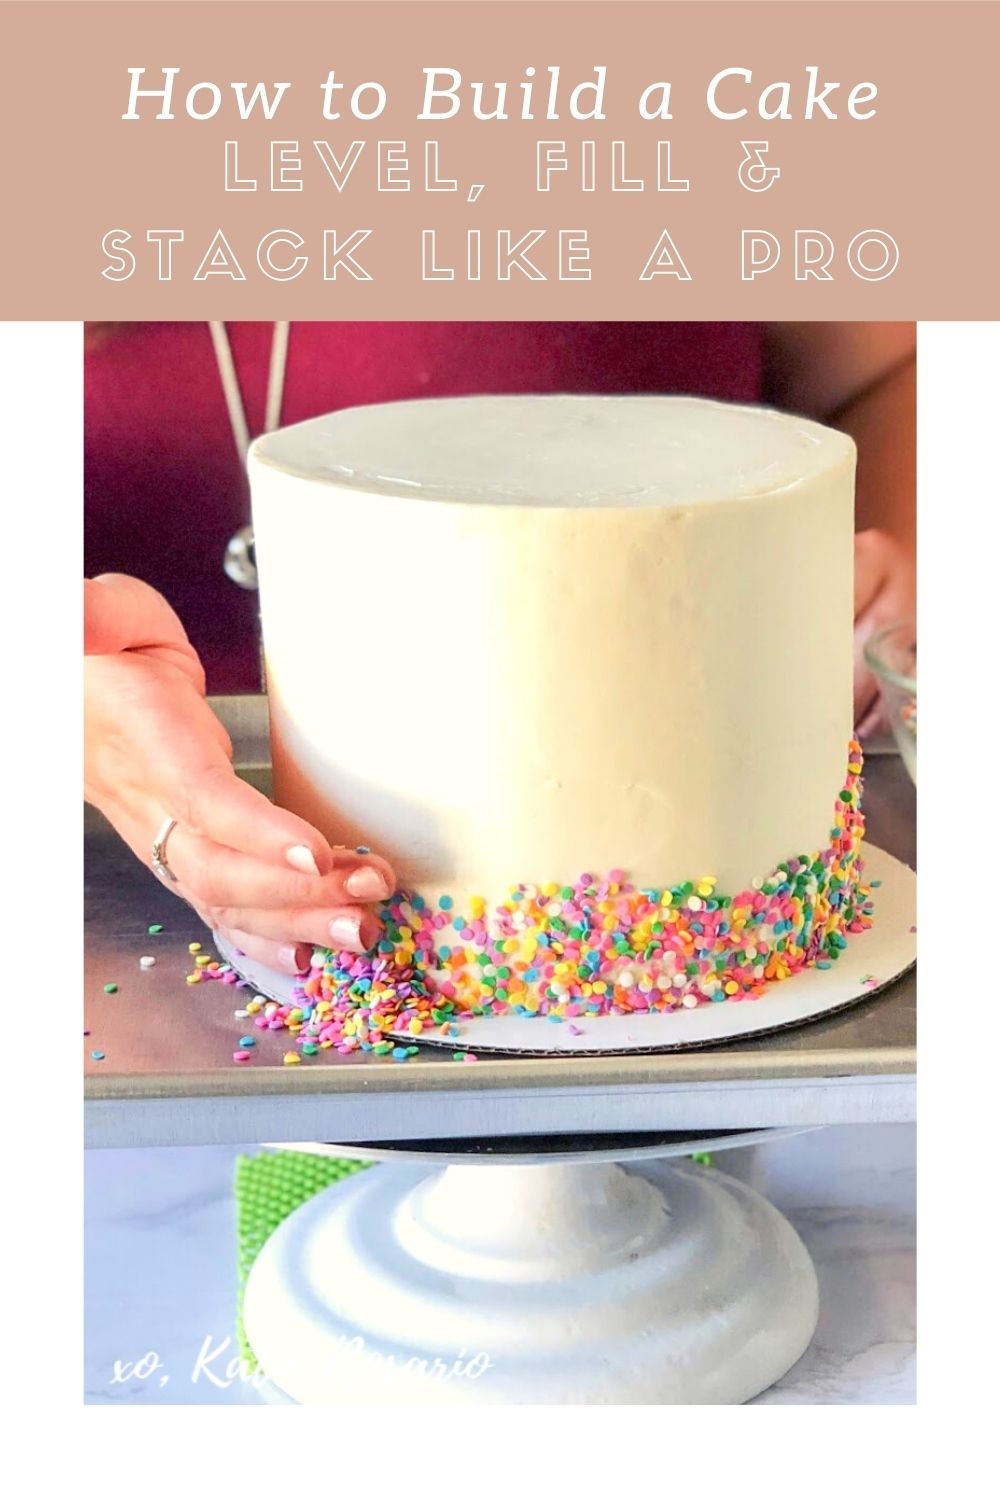 """Building a cake for the first time can be overwhelming, but not anymore. What does """"building"""" mean? Building means making layers of frosting and filling between two or more cake rounds to create an impressive finished product. Read on for tips from my new eBook that will help you start decorating cakes like a pro in no time. Download it now! https://xokatierosario.com/build-cakes-like-a-pro-guide/"""